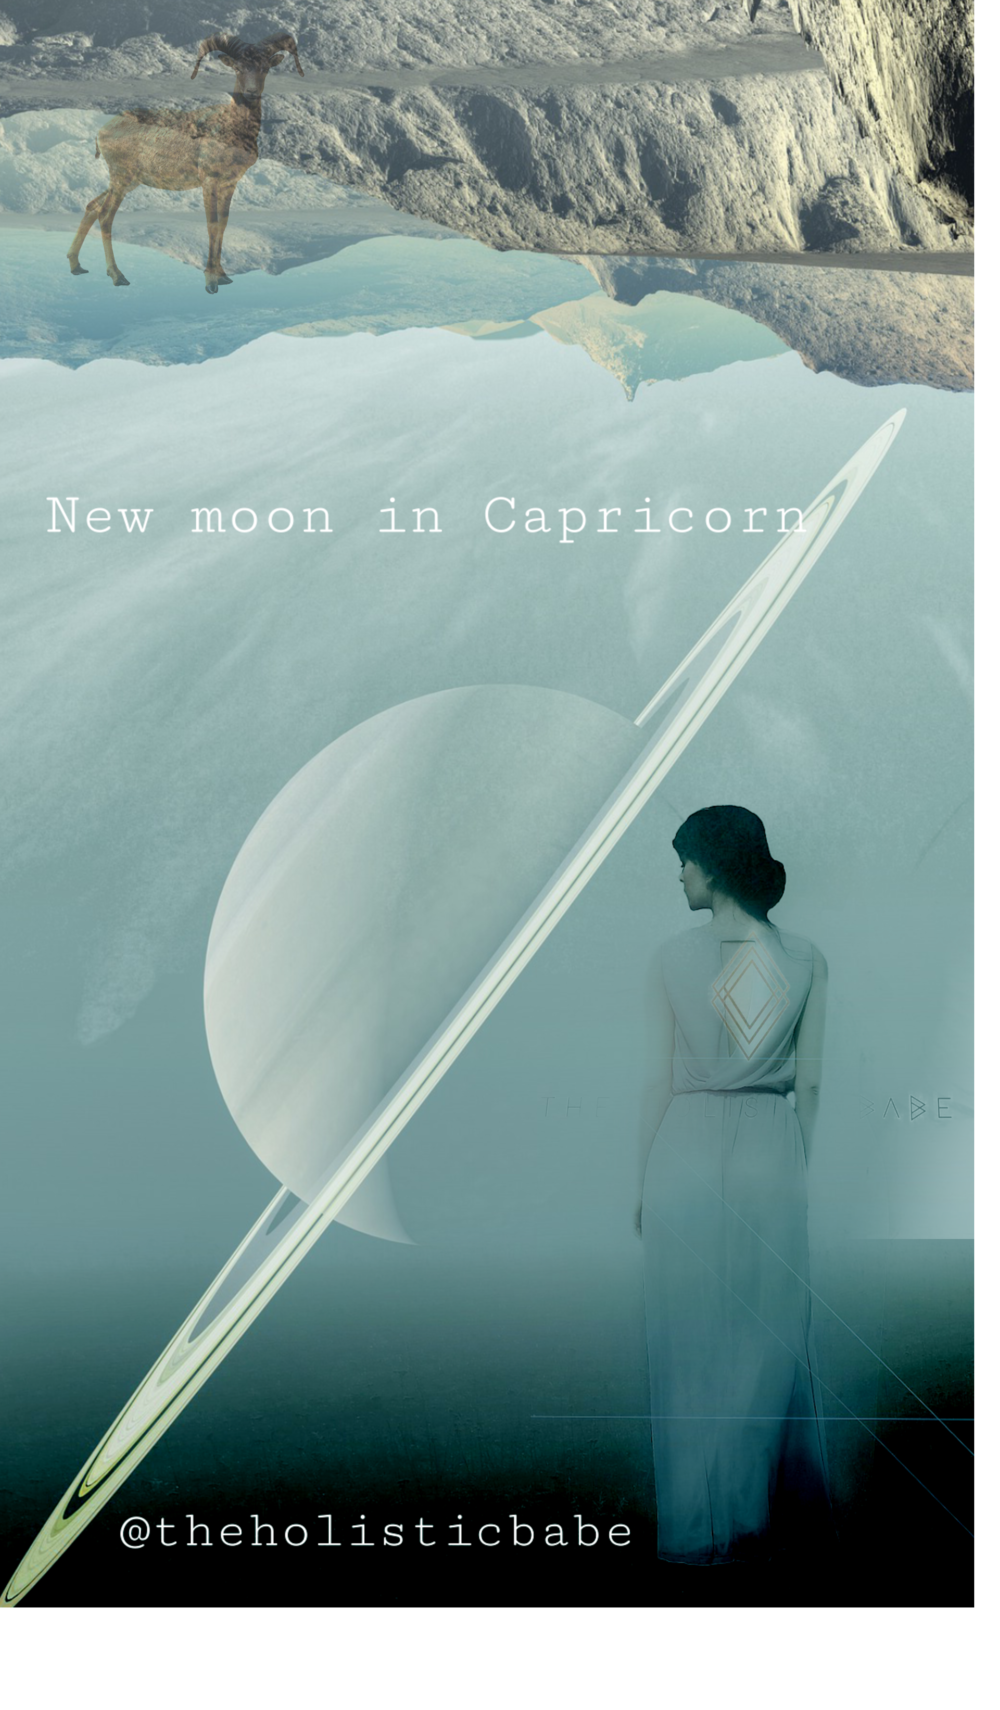 New moon  matcha ritual<3 Capricorn focuses on discipline, responsibility and mega concentration.